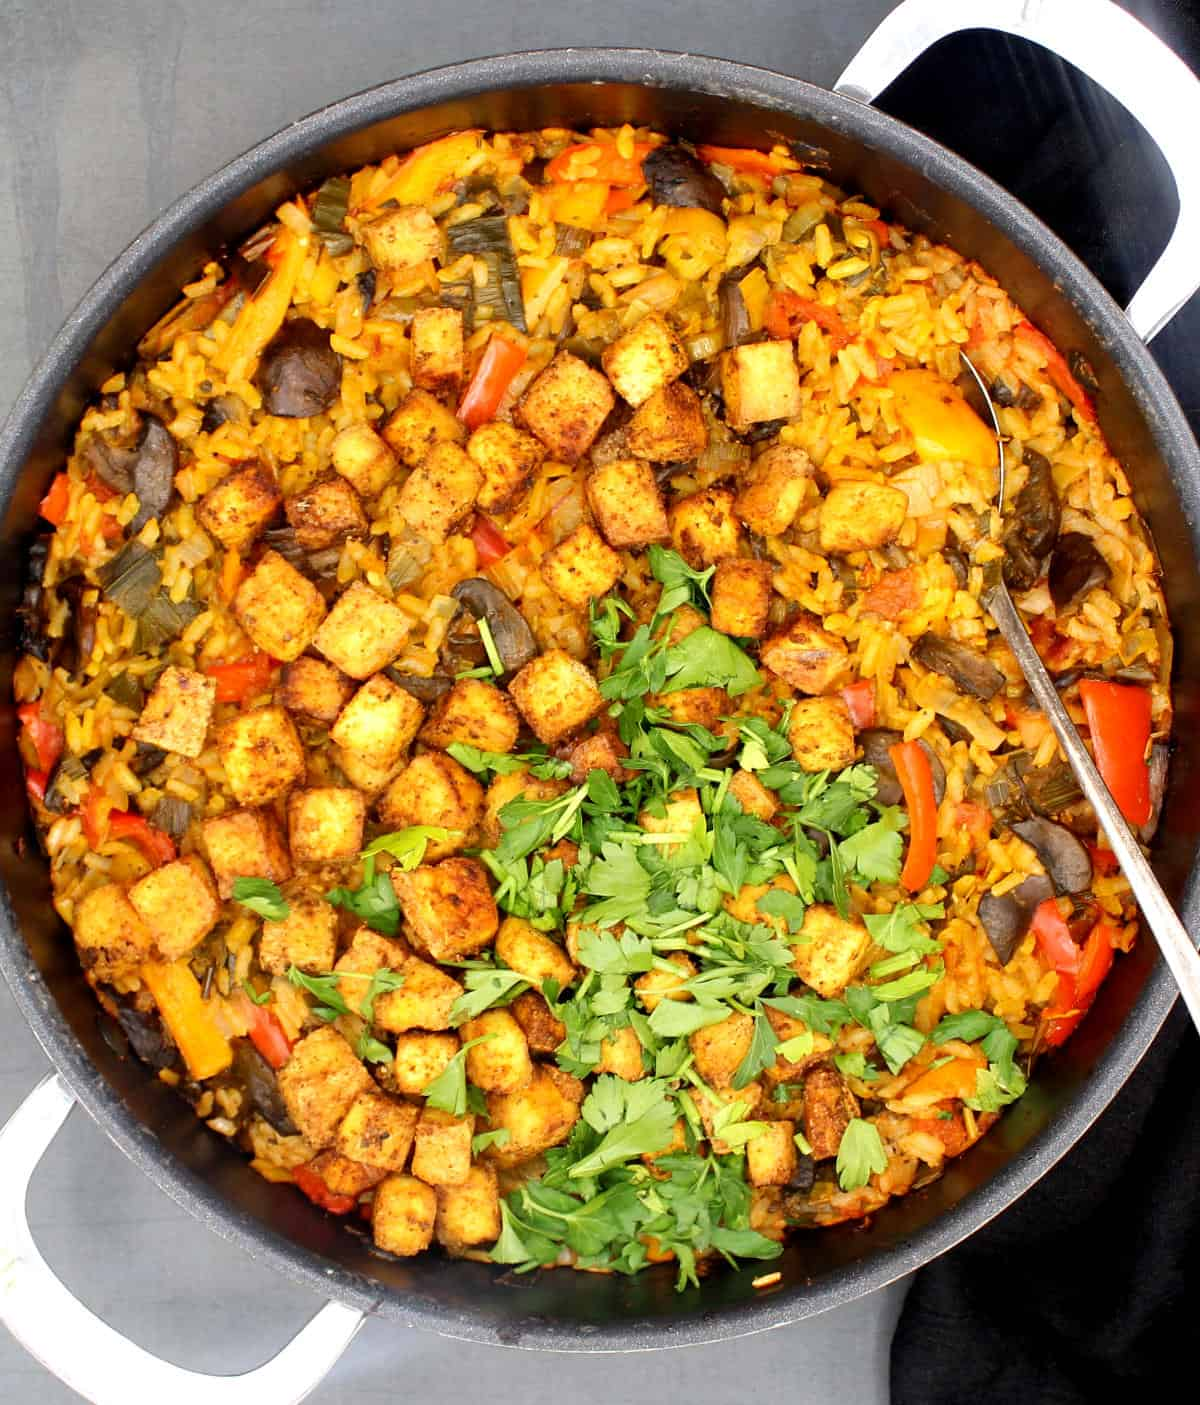 A skillet containing a just-cooked vegetable paella with tofu, veggies like bell peppers and mushrooms, and a parsley garnish.